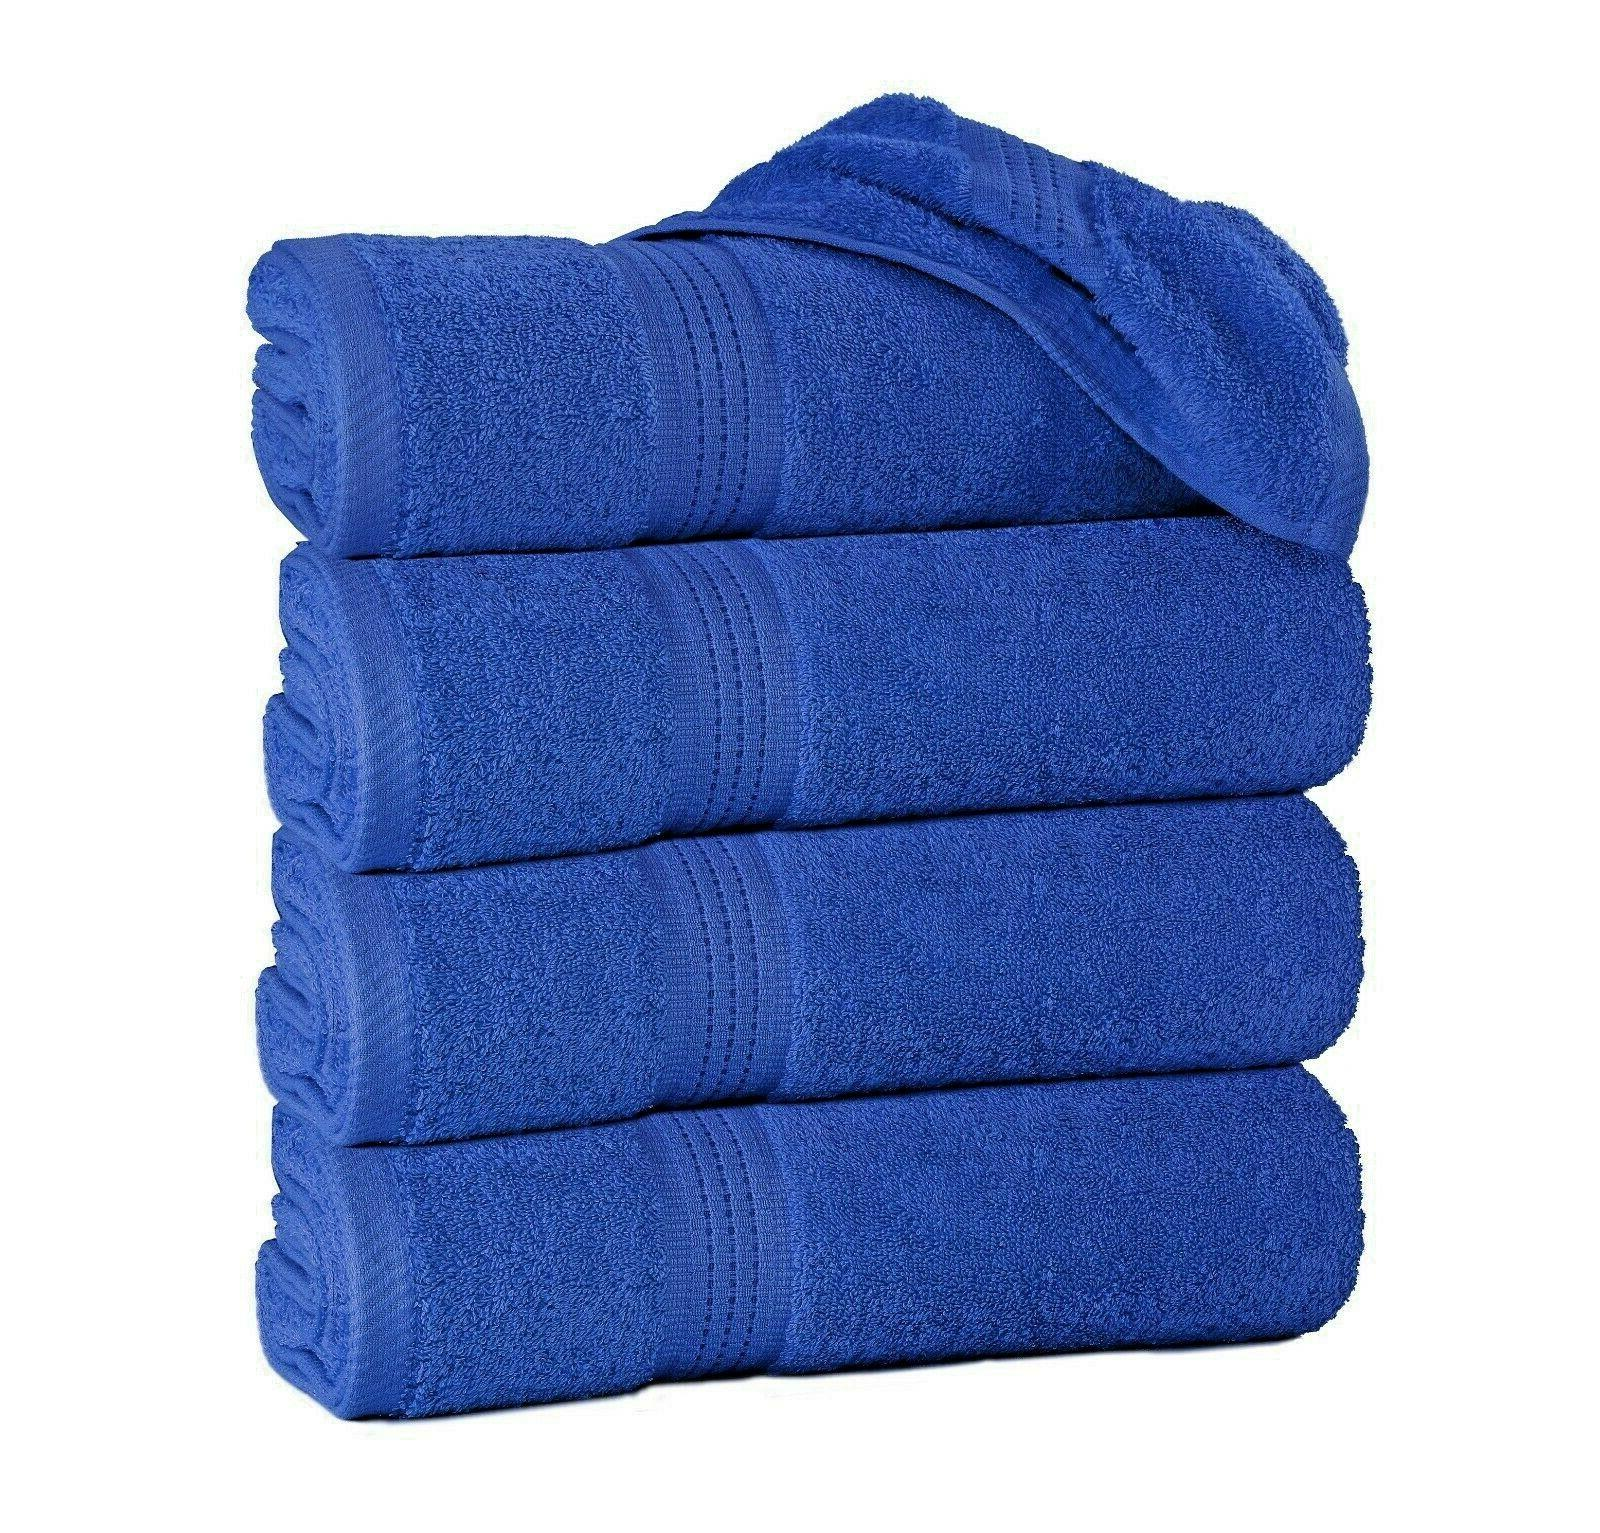 """Large Bath Towels Pack of 4 100% Cotton 27""""x55"""" Highly Absor"""